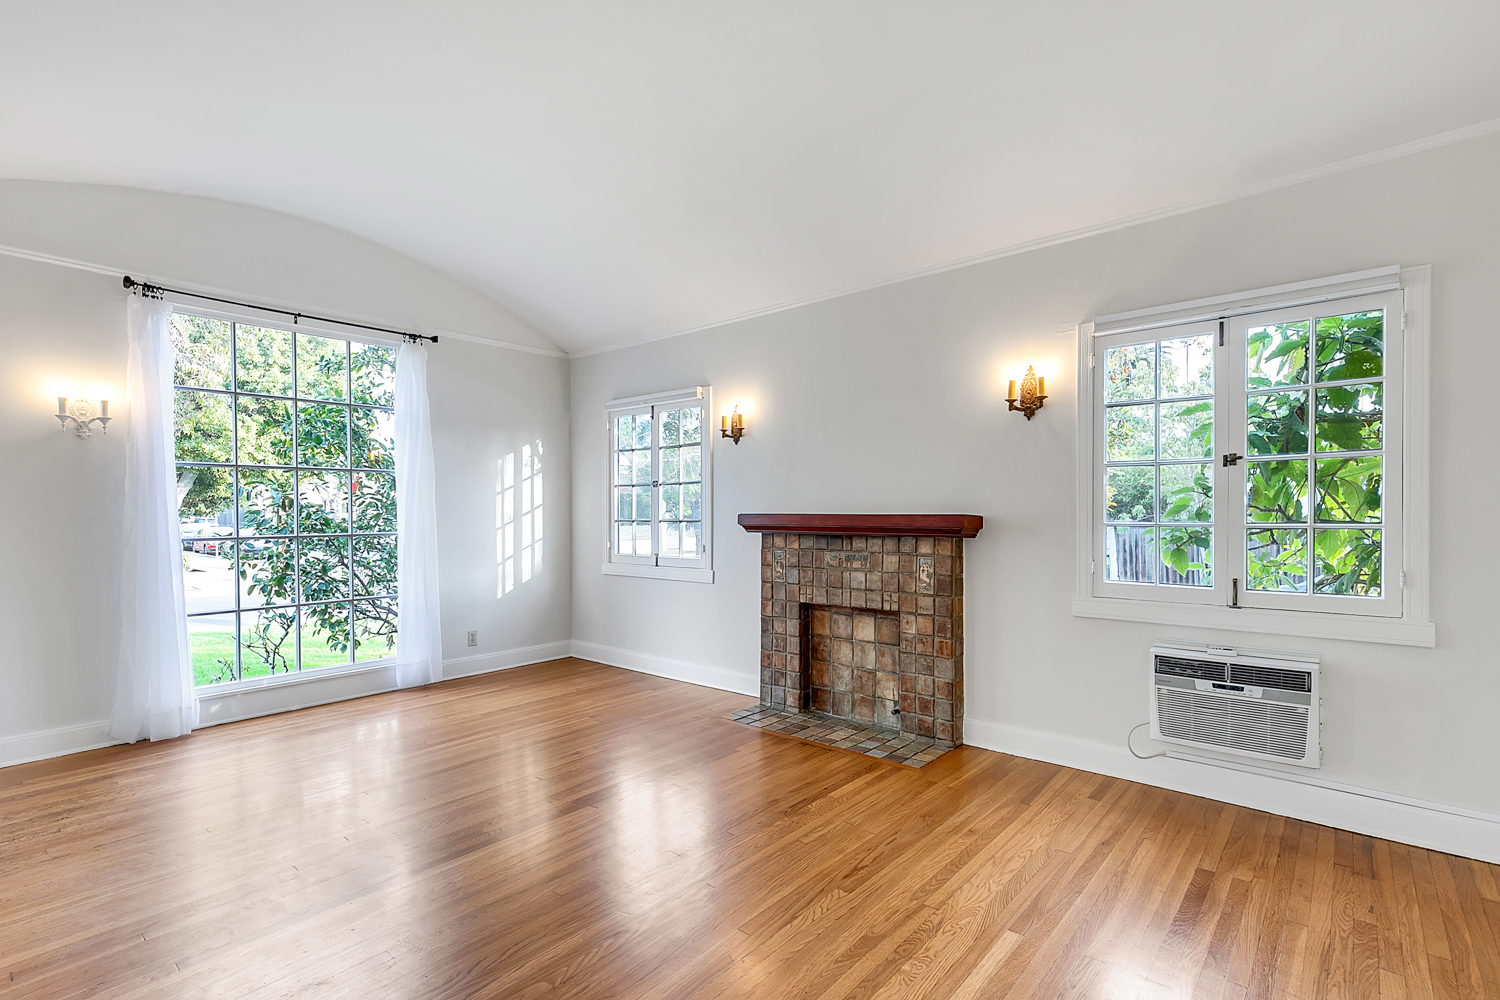 Adorabably Prestine 1920s 2BR/ 1BA Unit in Duplex w/ Private Yard and Driveway Parking